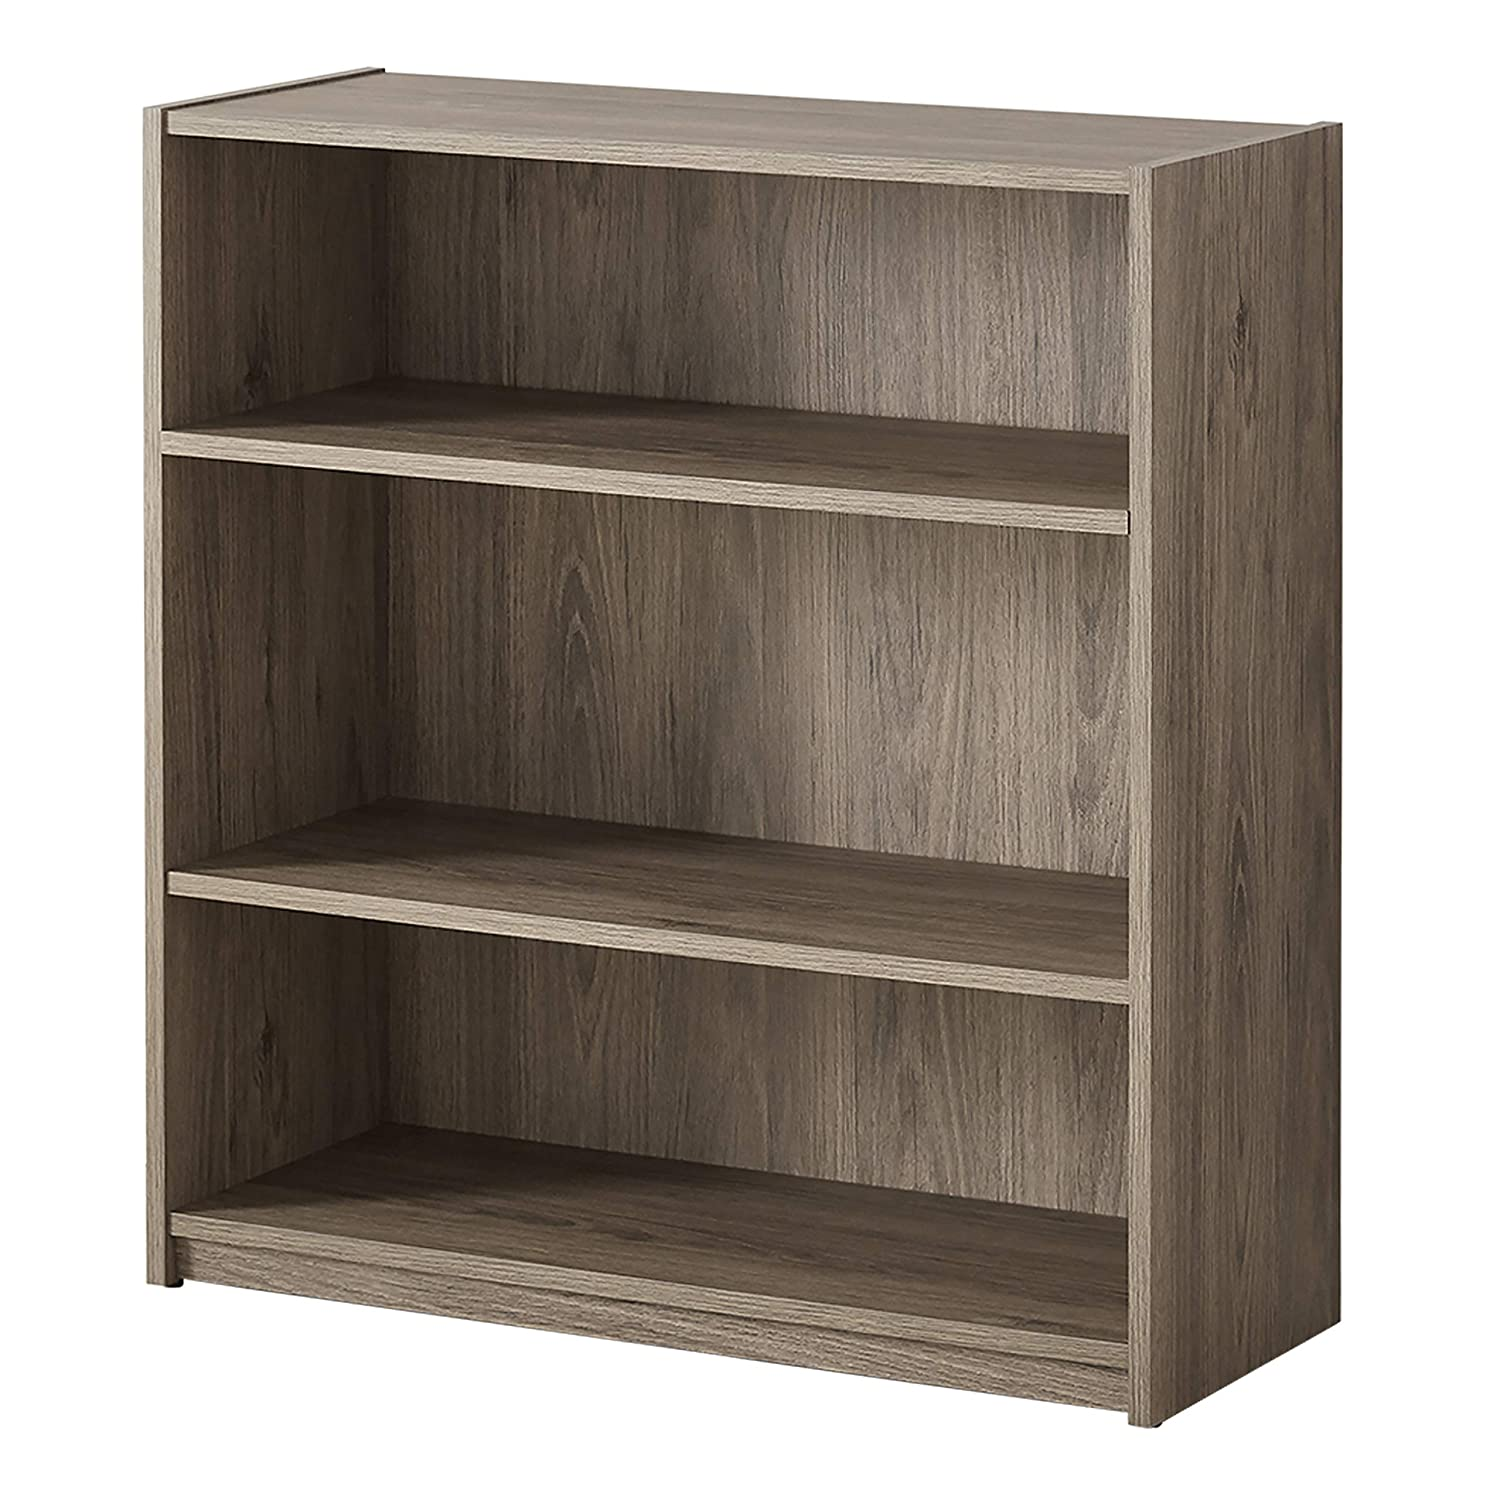 Mainstay Easy To Assemble Contemporary Style 3 Shelf Wood Bookcase Multiple Colors Rustic Oak